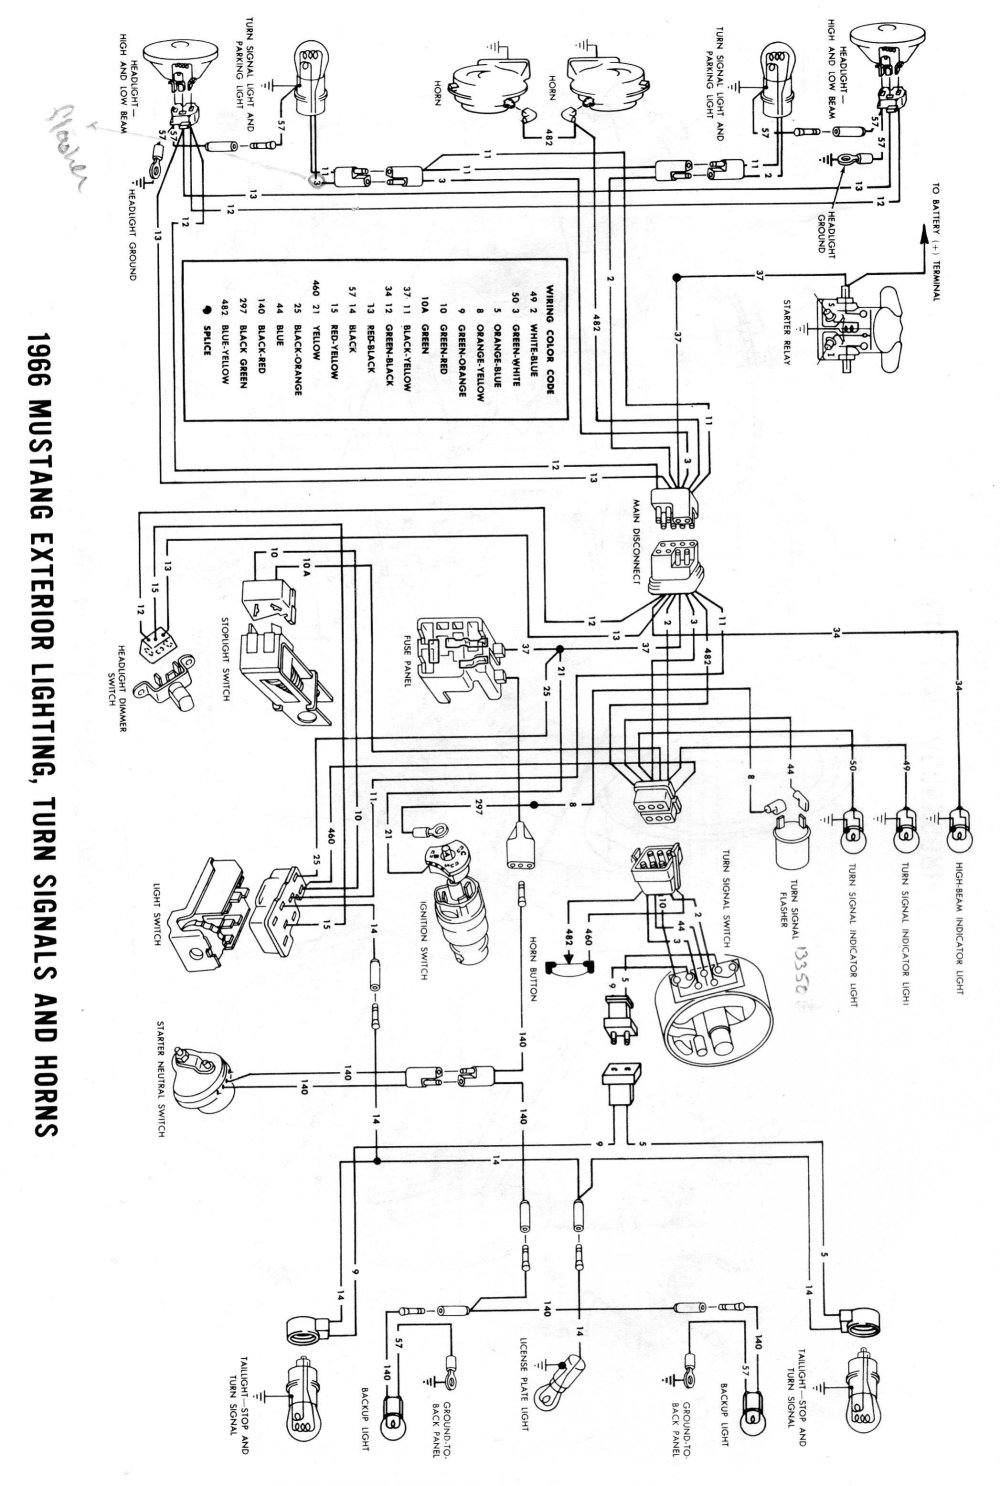 medium resolution of 1968 mustang headlight switch wiring diagram wiring diagram65 ford headlight switch wiring diagram free picture wiring